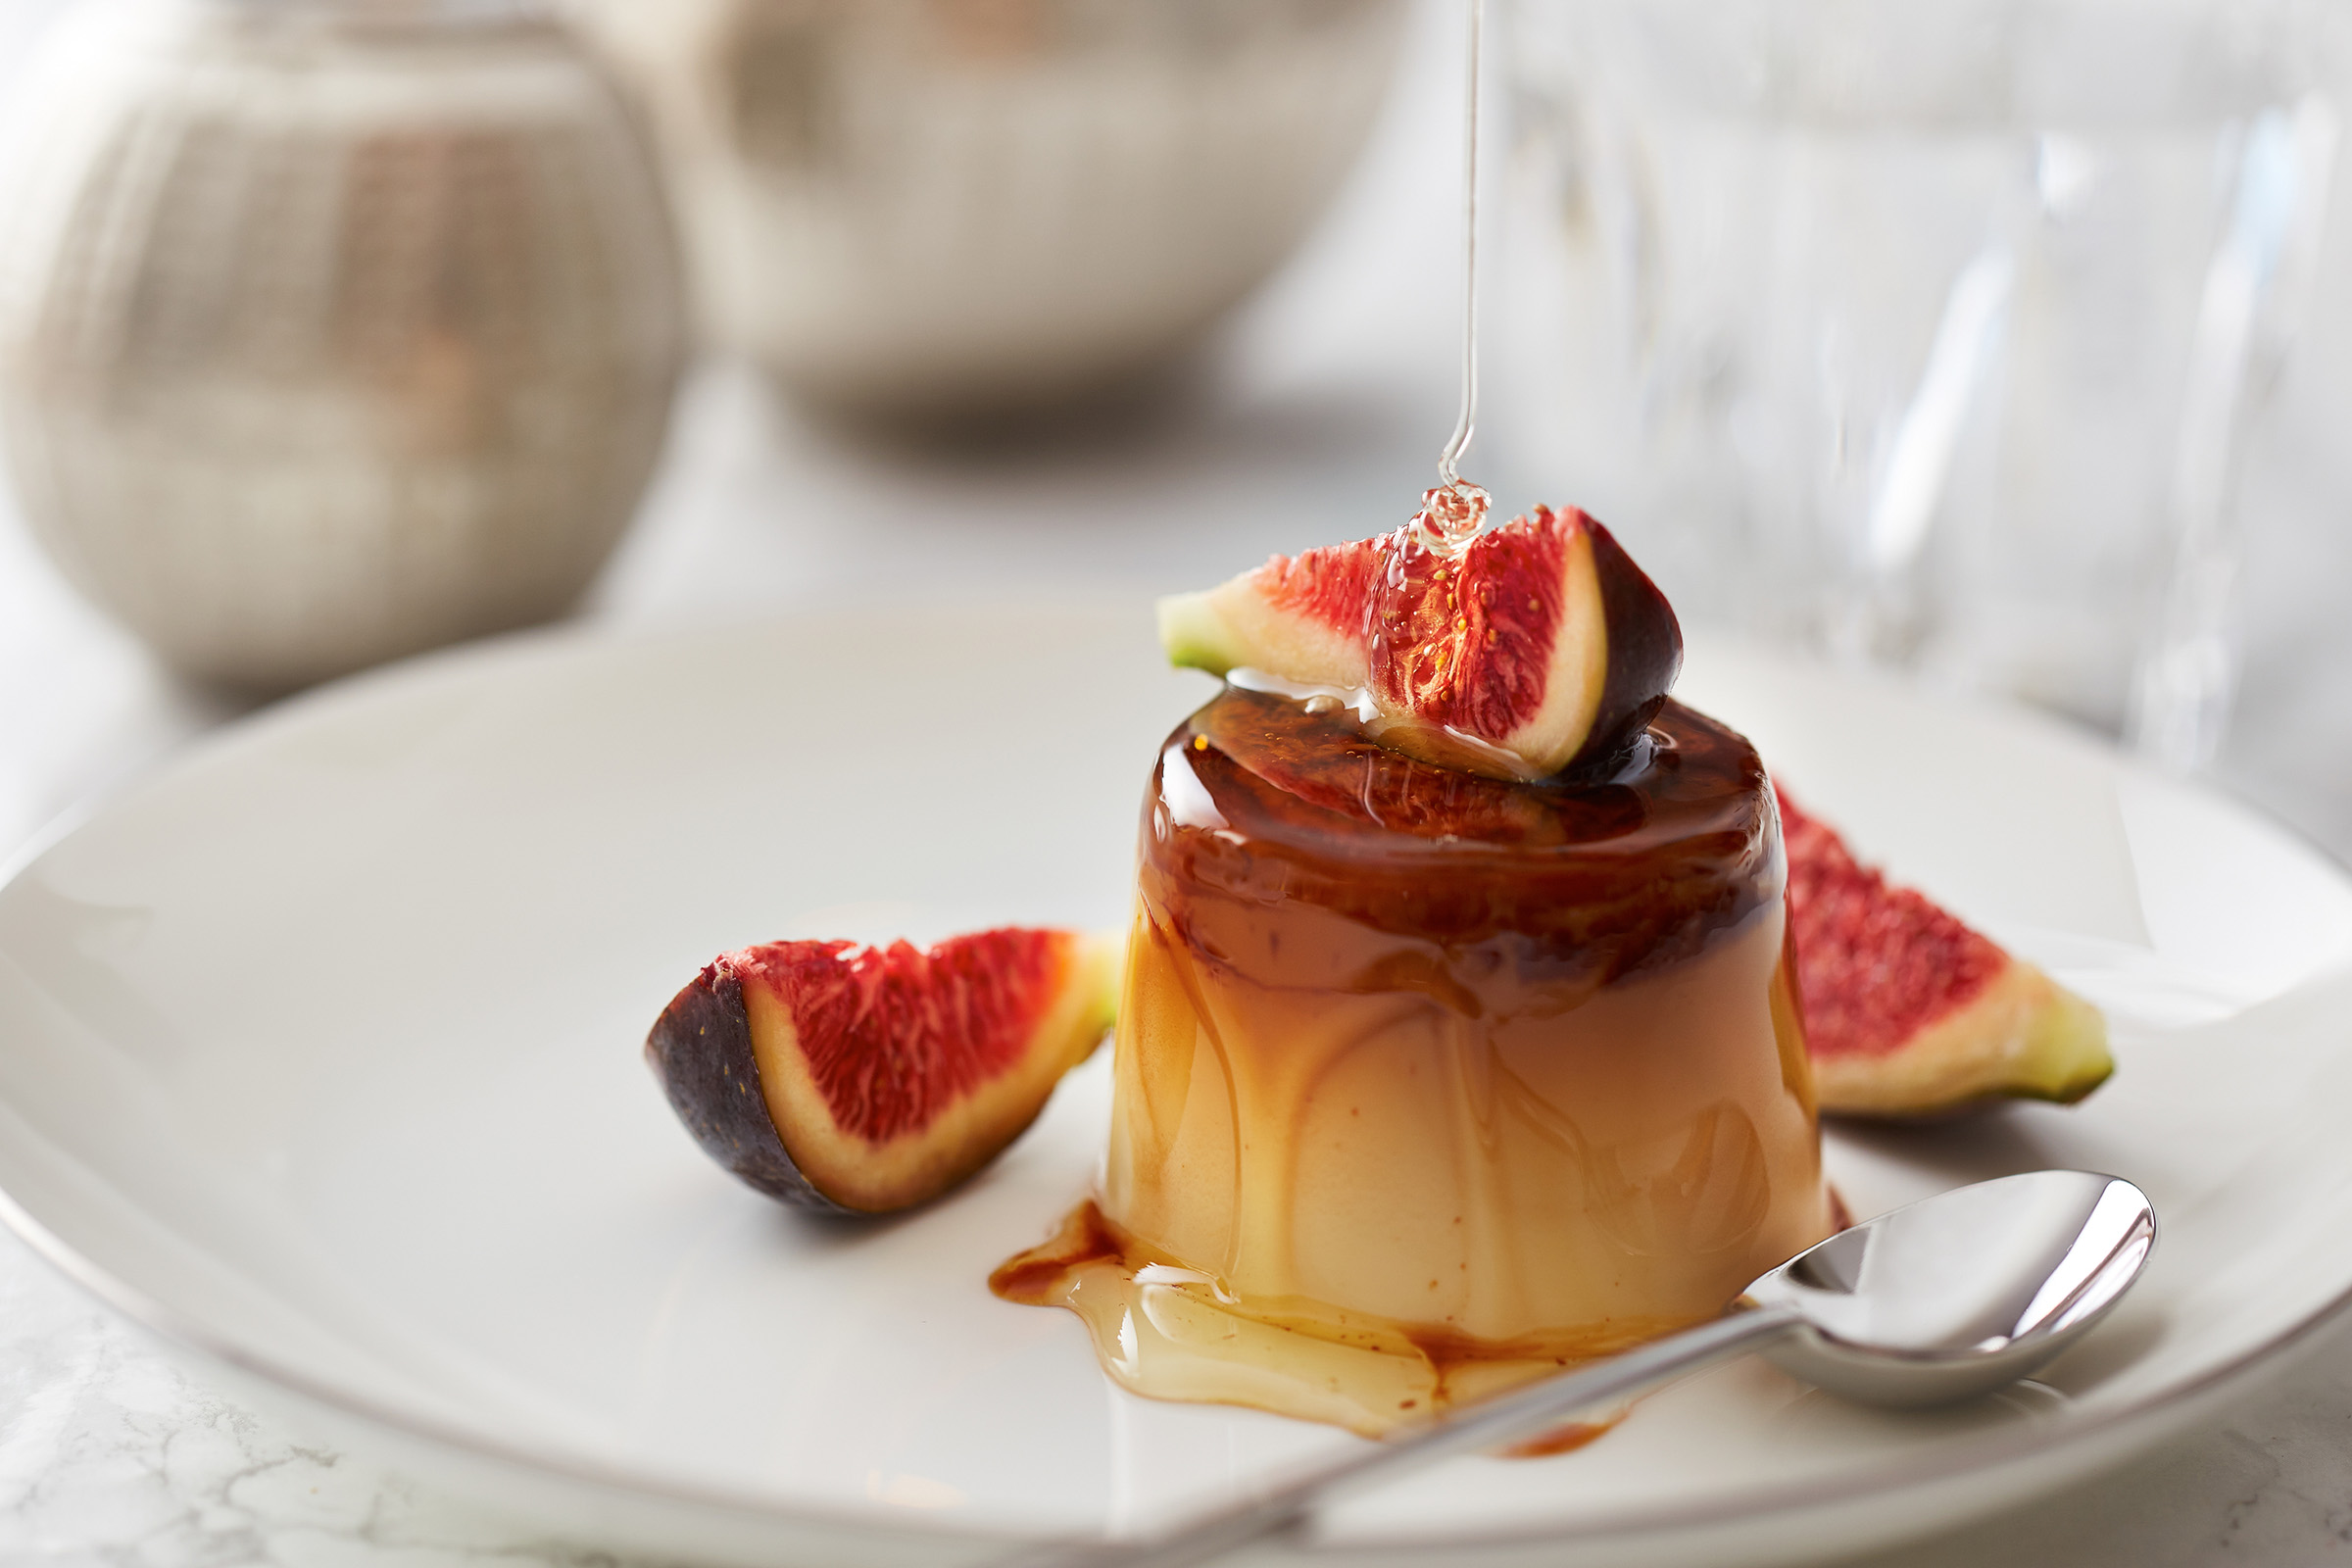 Pouring honey on fig and pudding